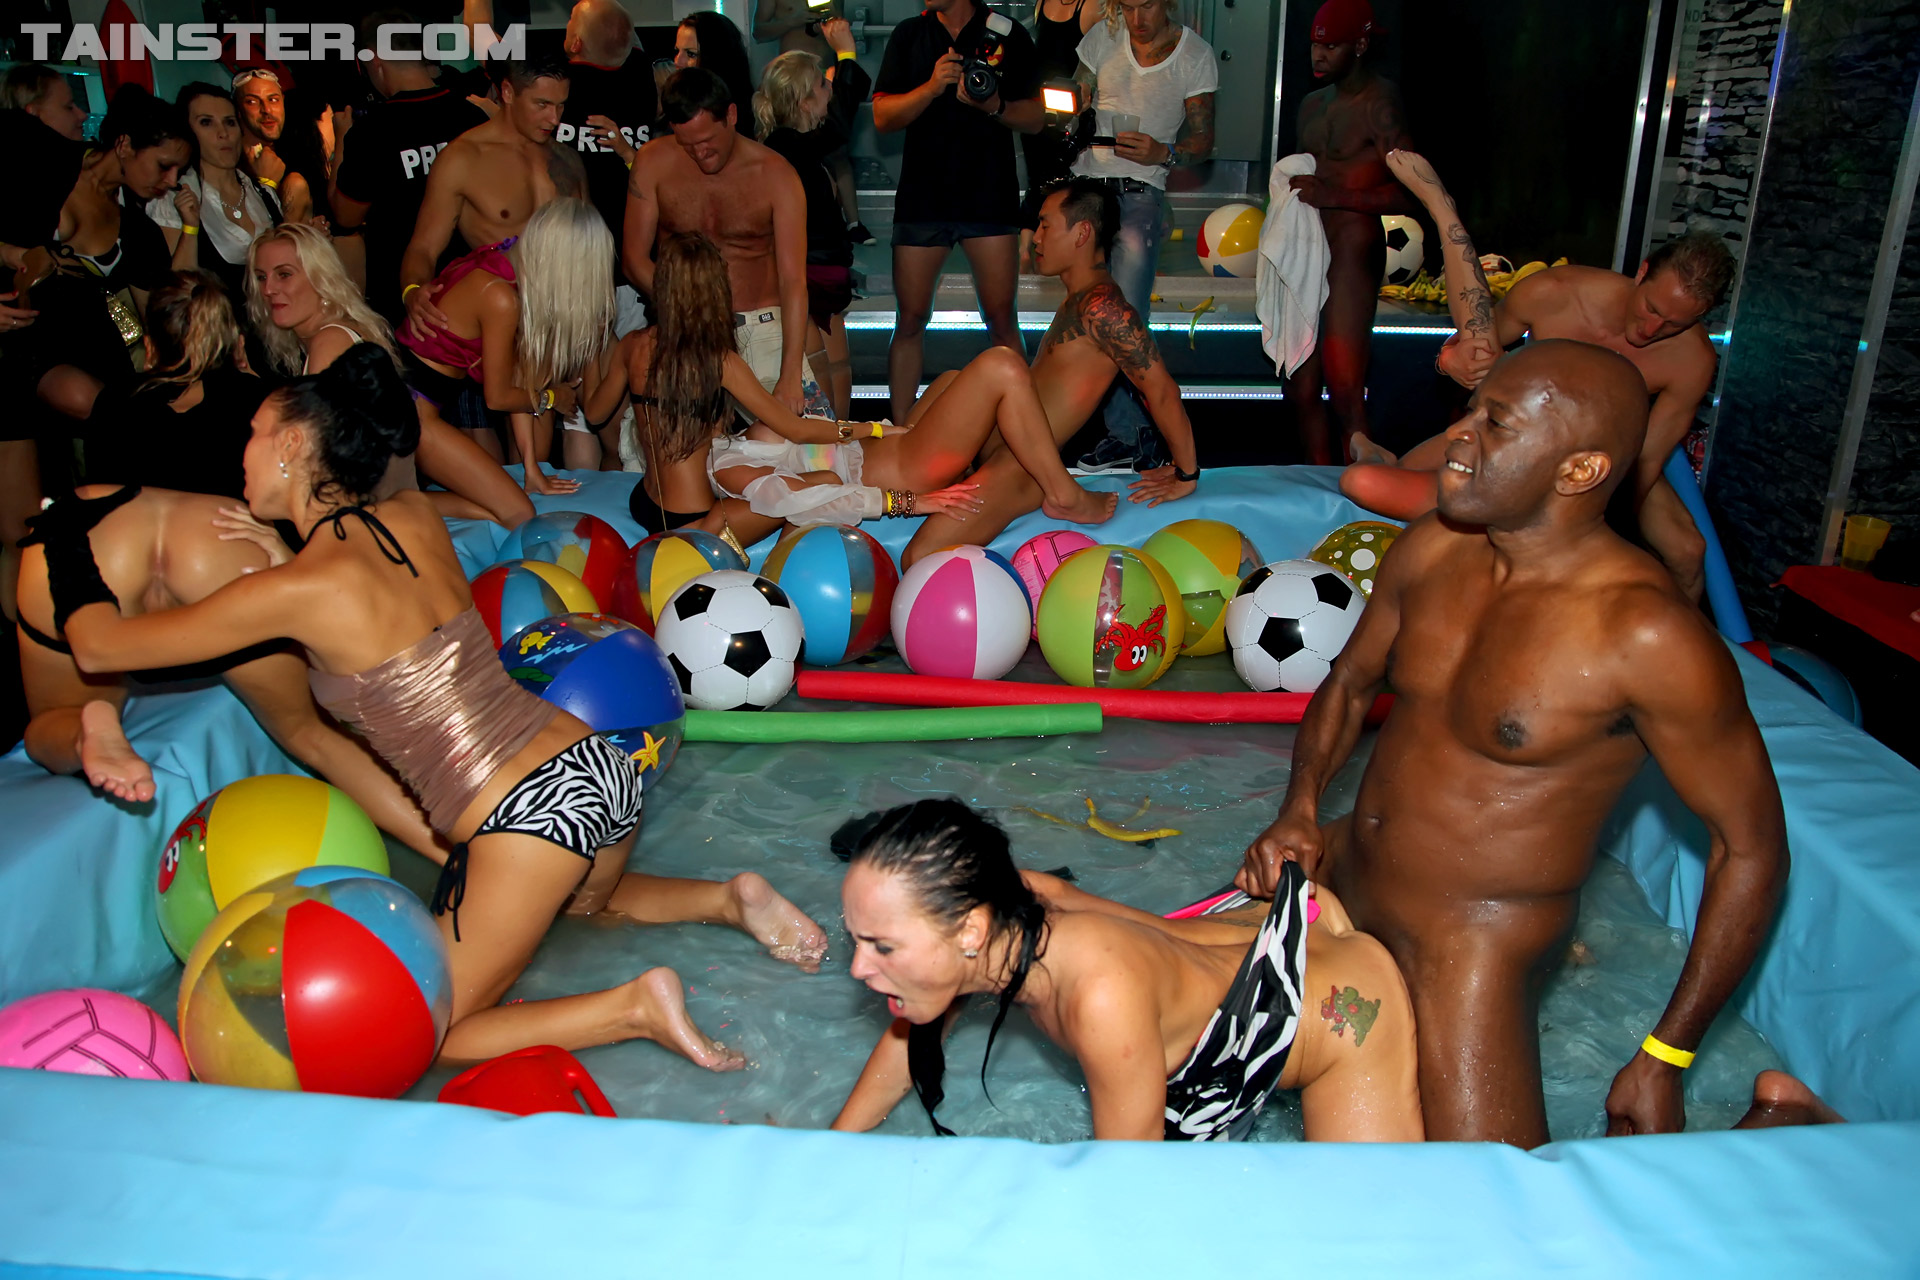 Sexy orgy parties